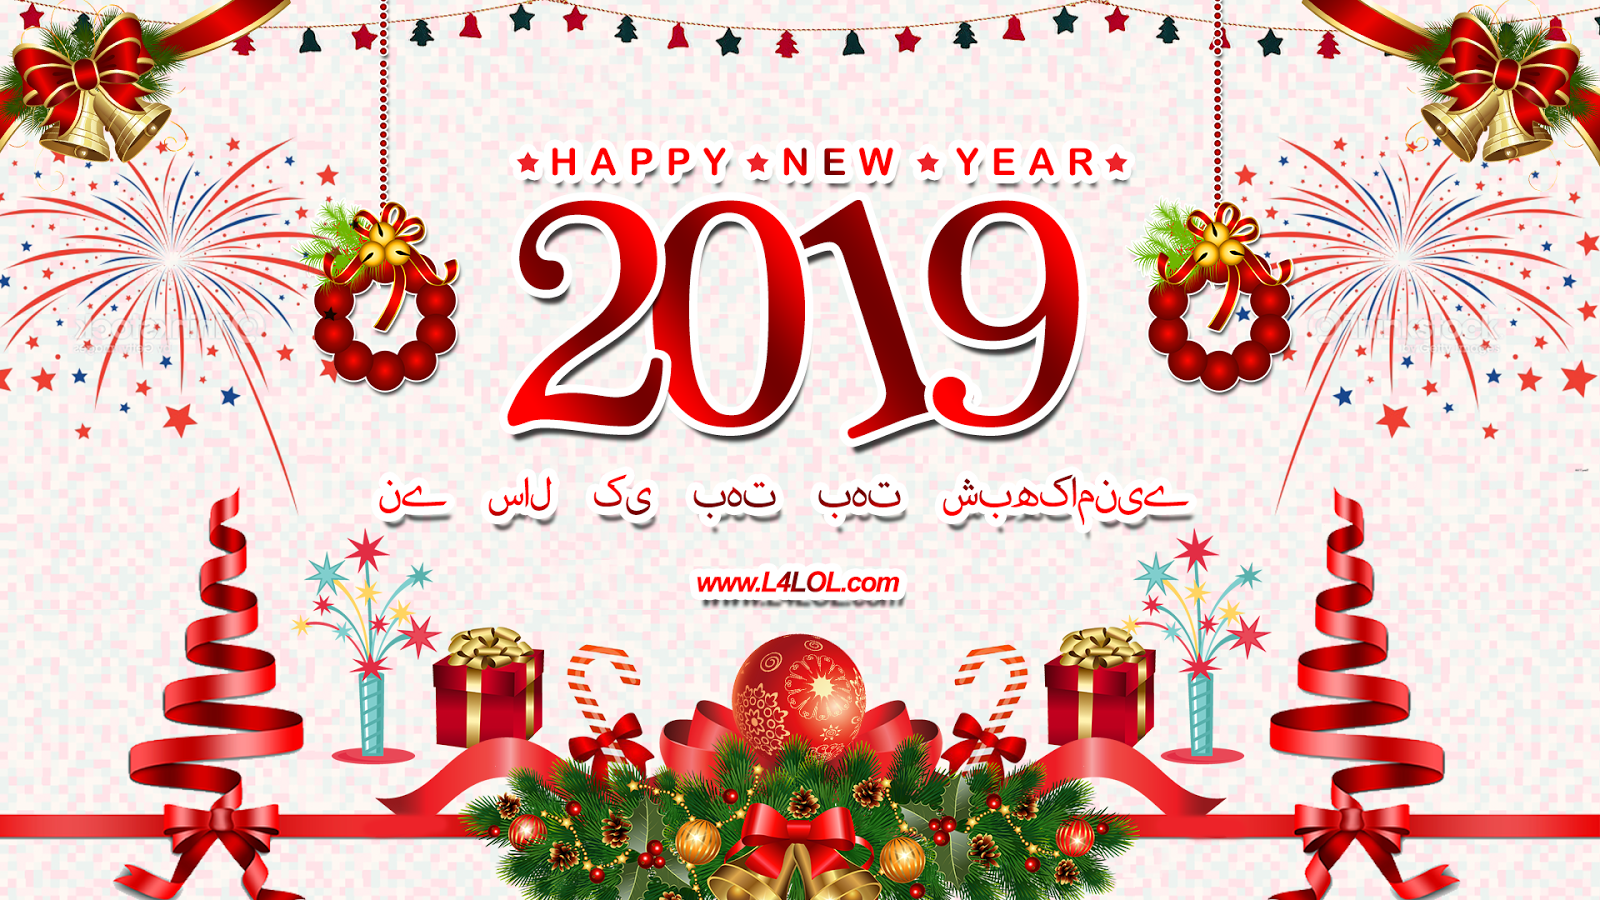 Happy New Year Images 2019 Quotes Status Wishes wallpapers Messages ...